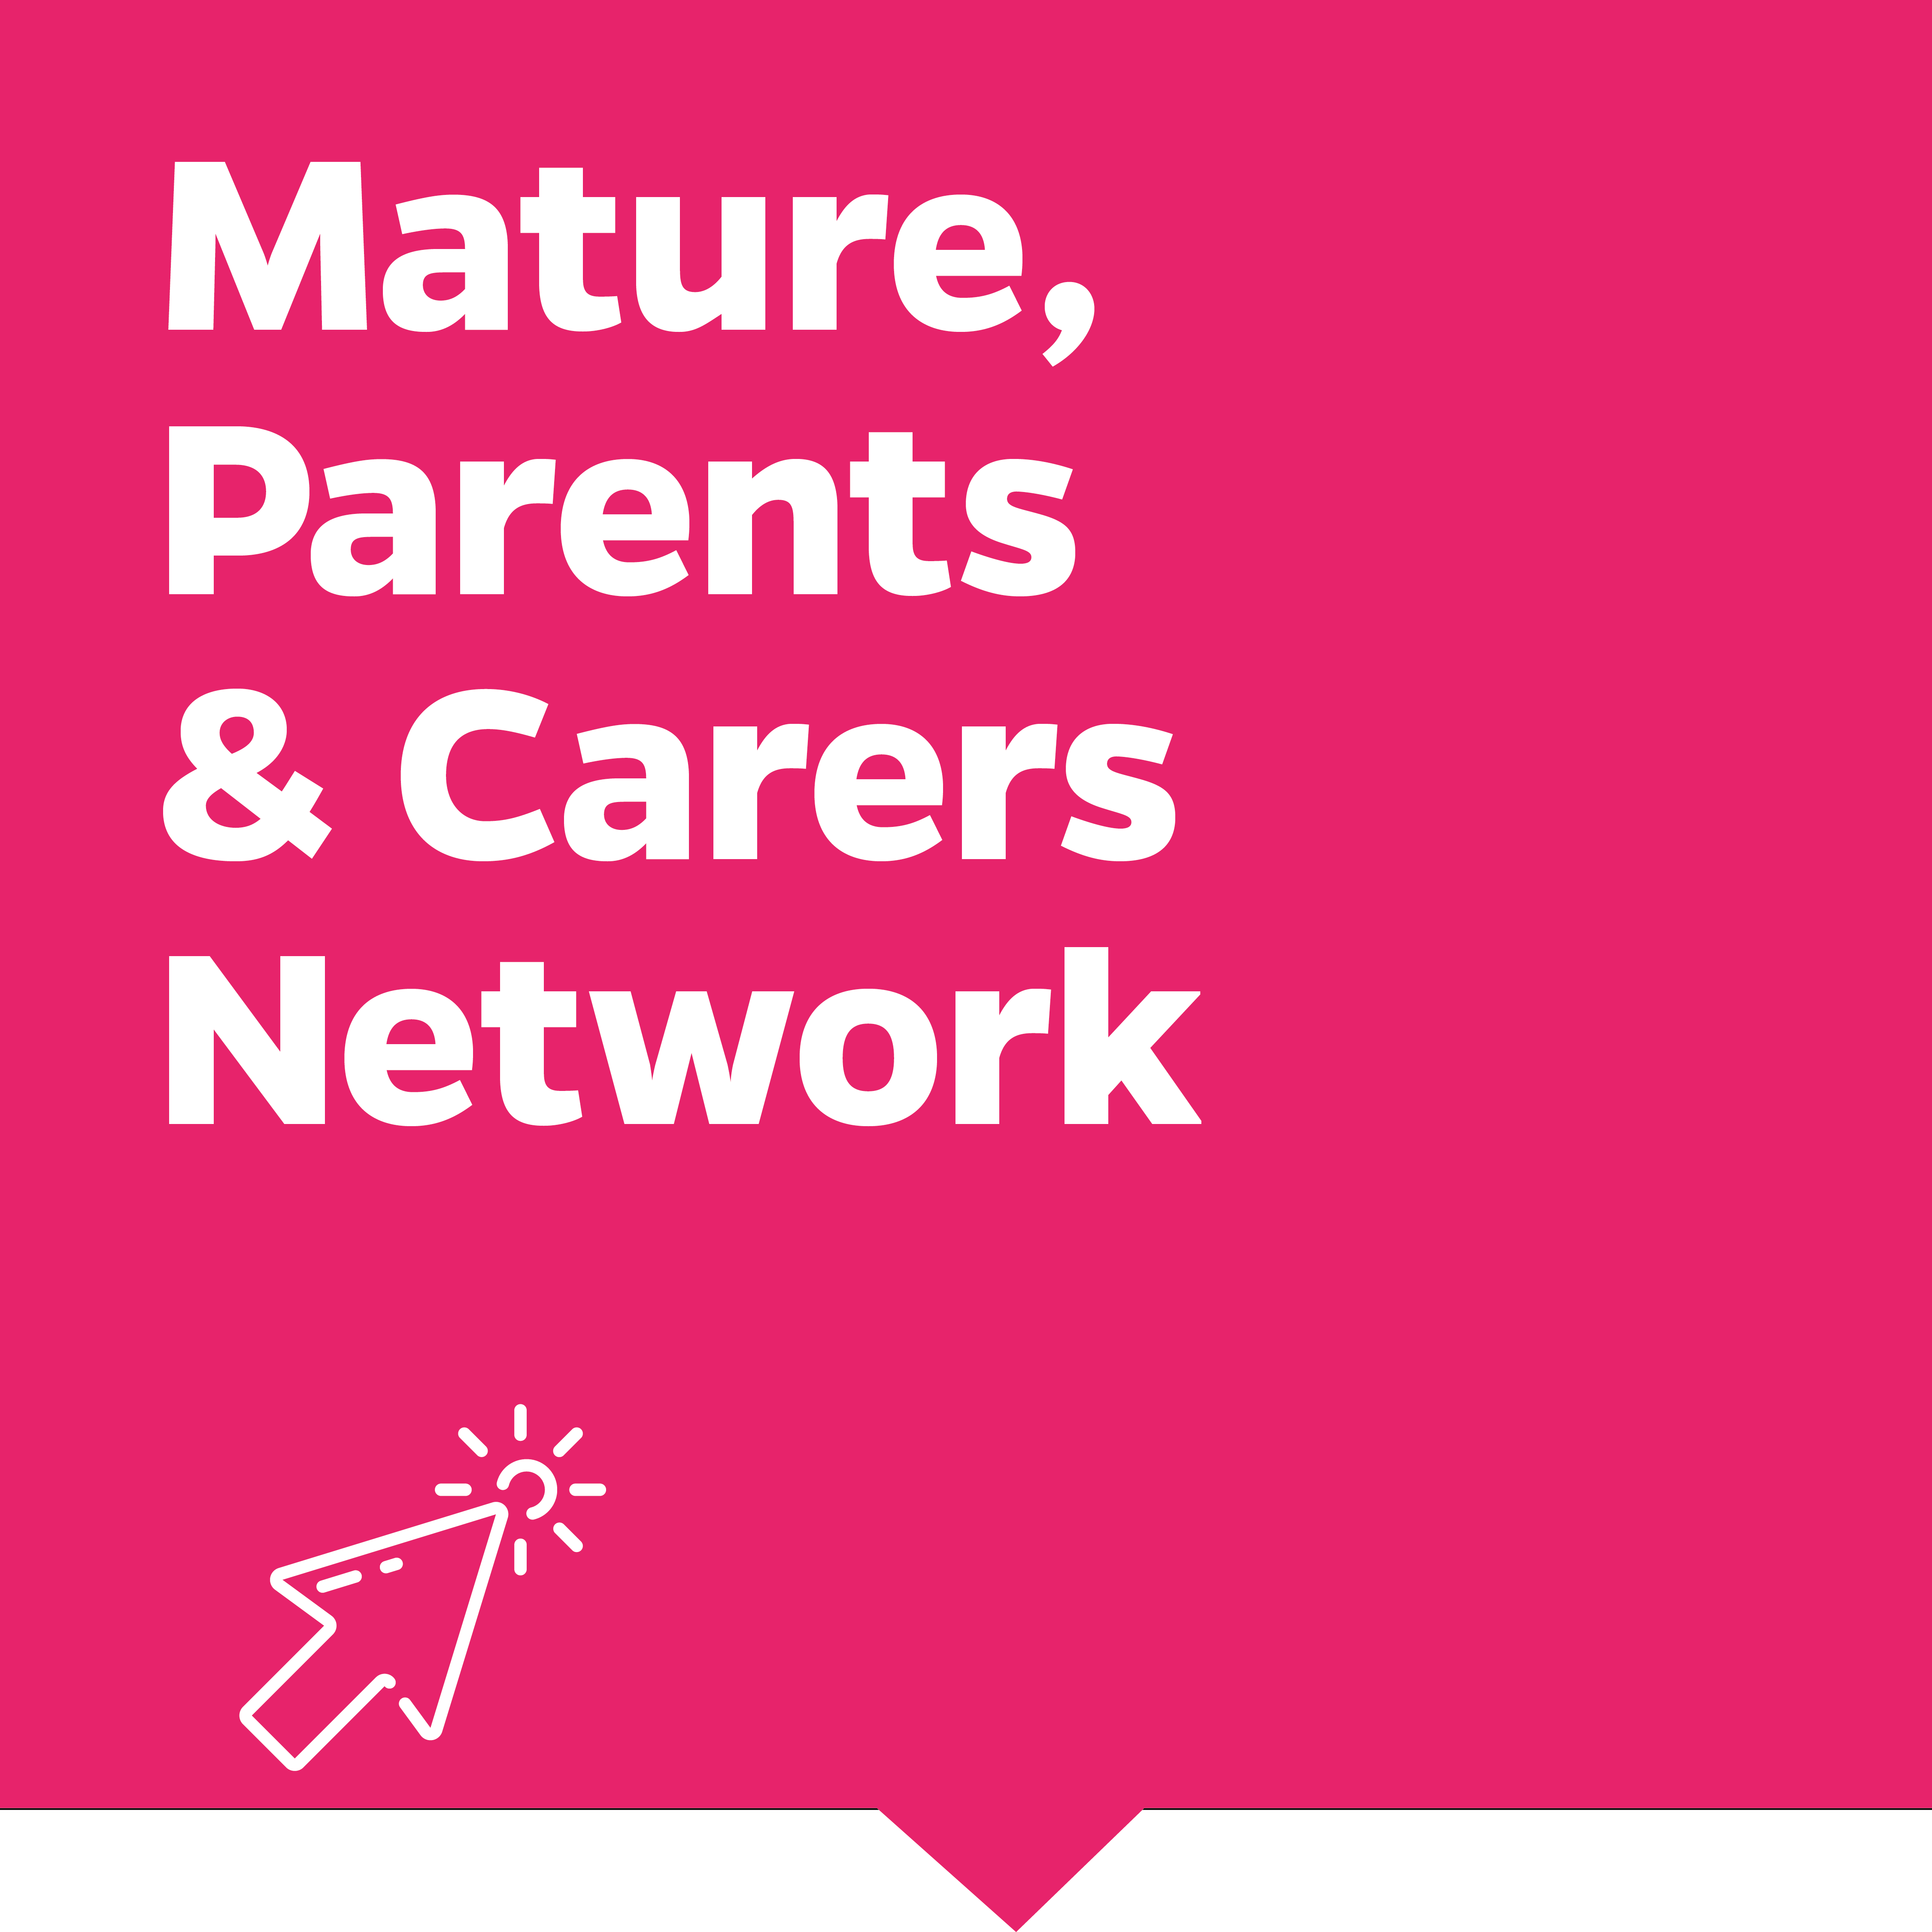 Mature, Parents and Carers Network